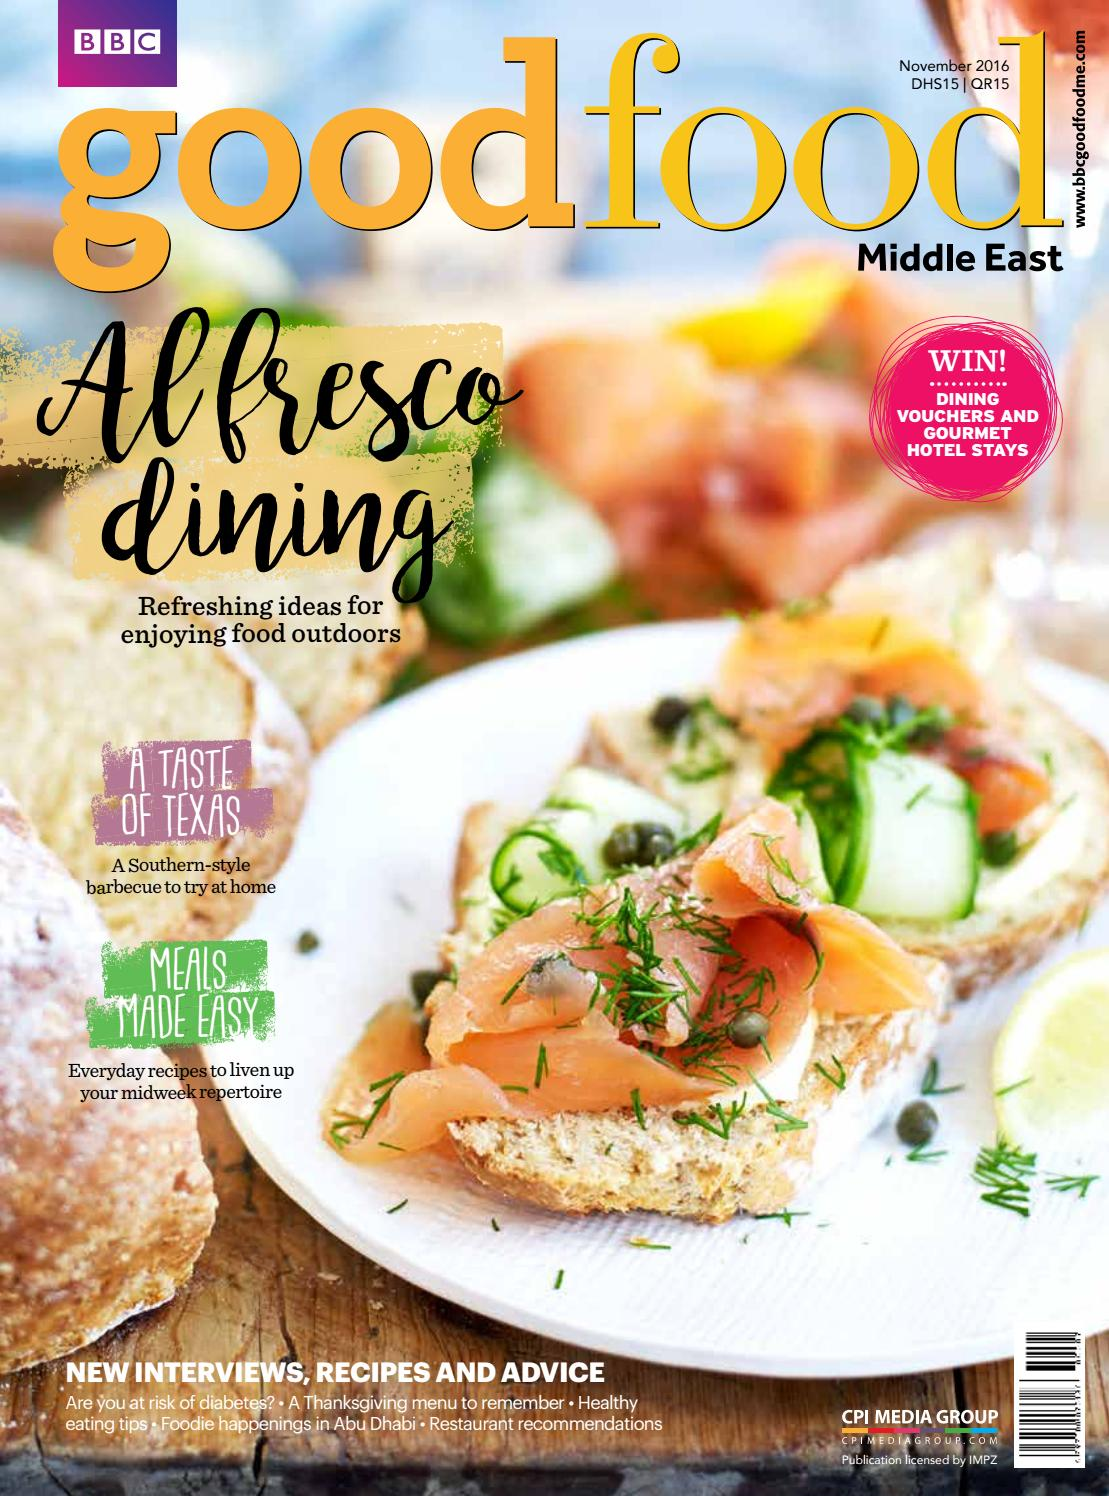 Bbc good food me 2016 november by bbc good food me issuu forumfinder Choice Image